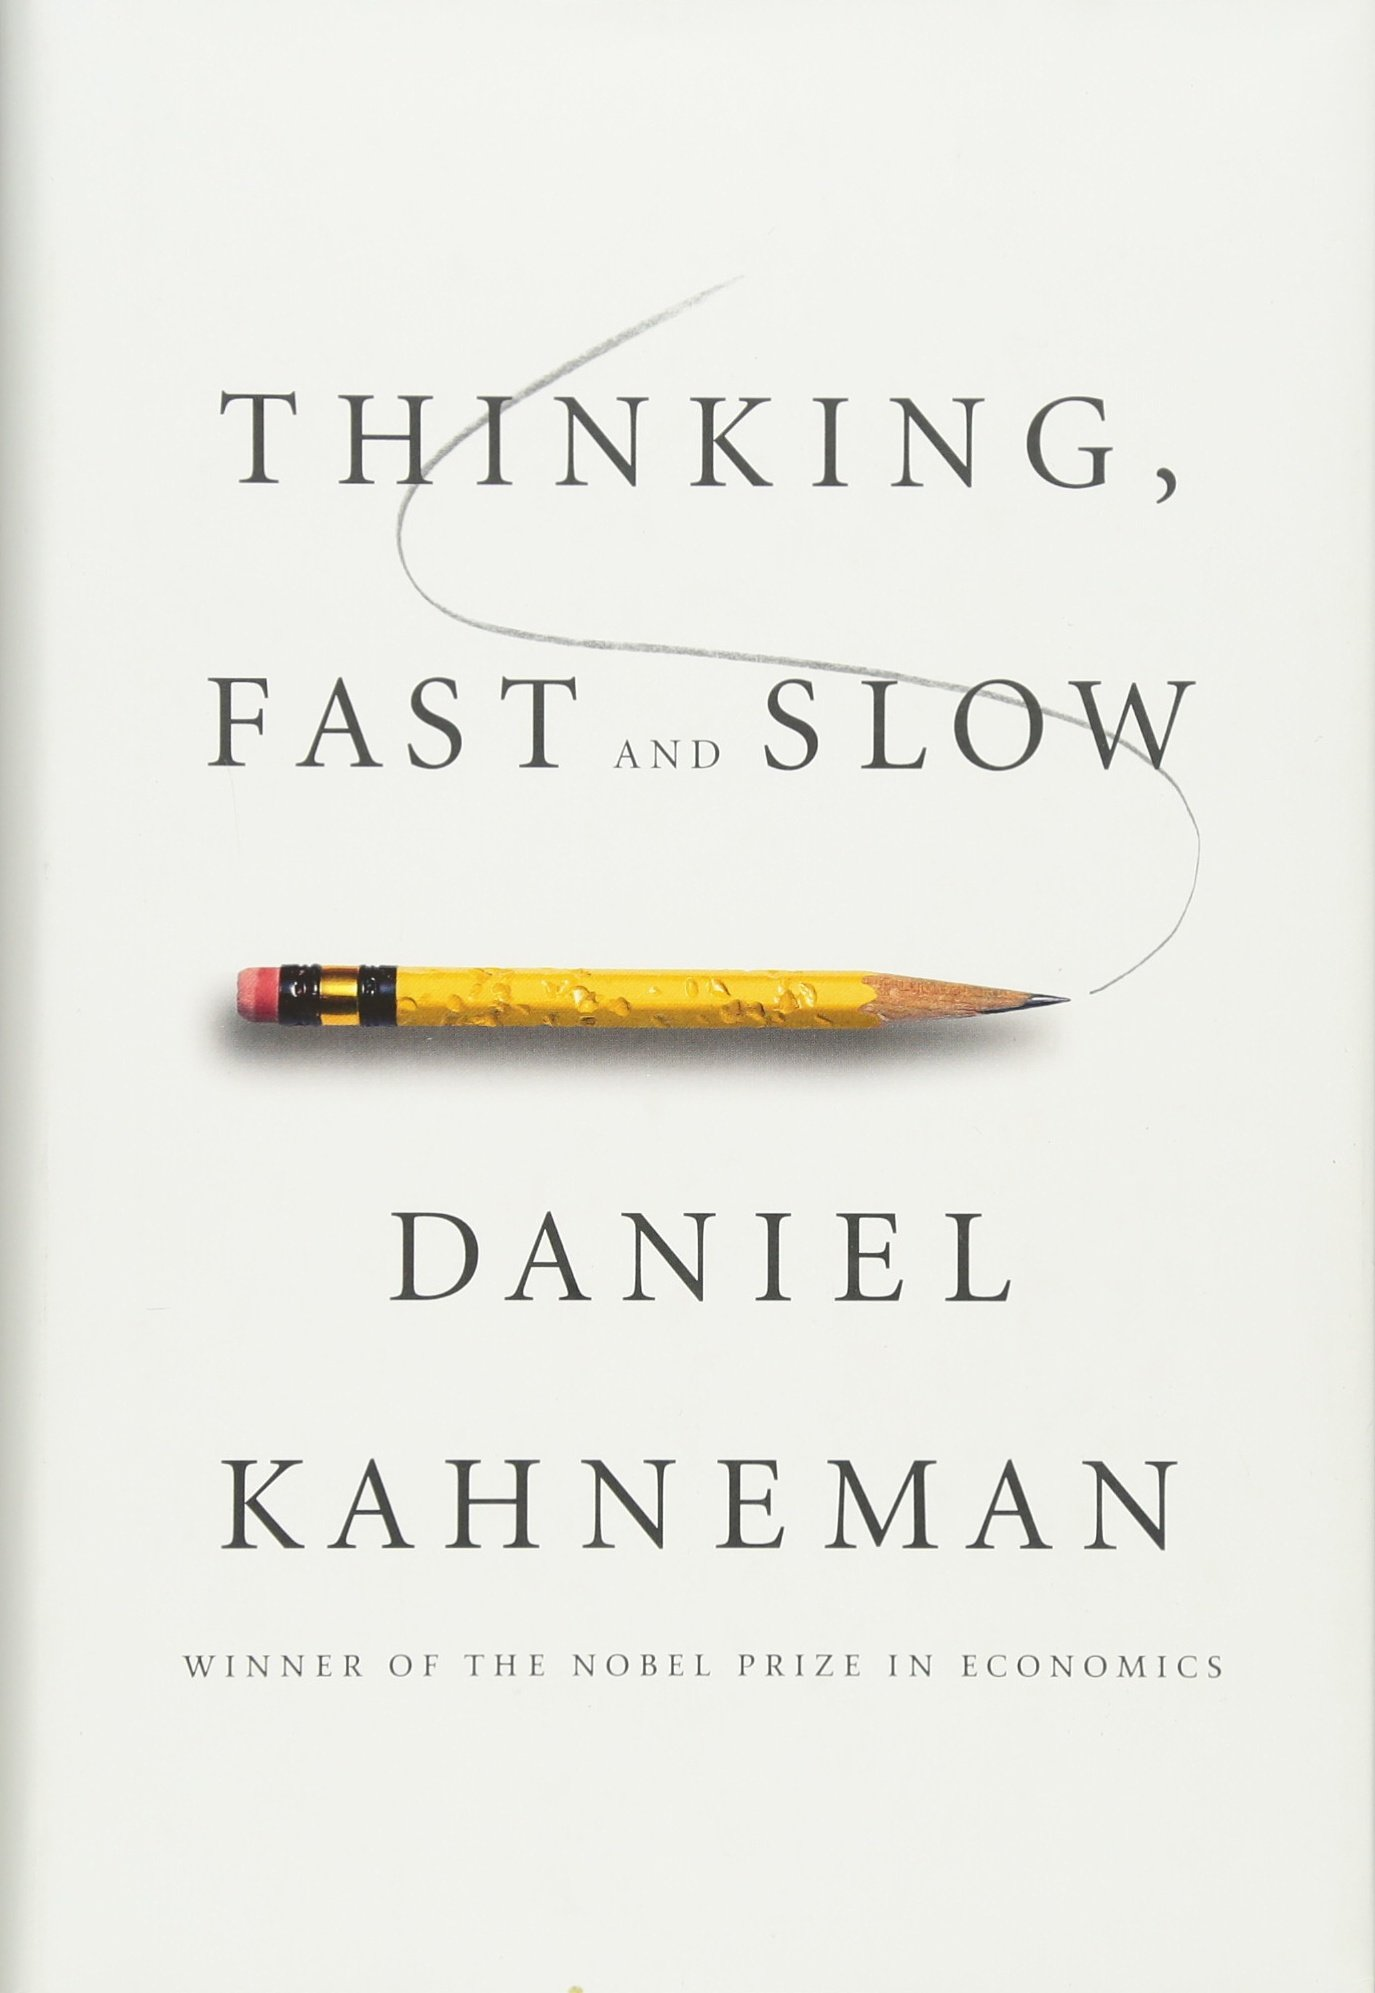 Best Business Books: Thinking, Fast and Slow